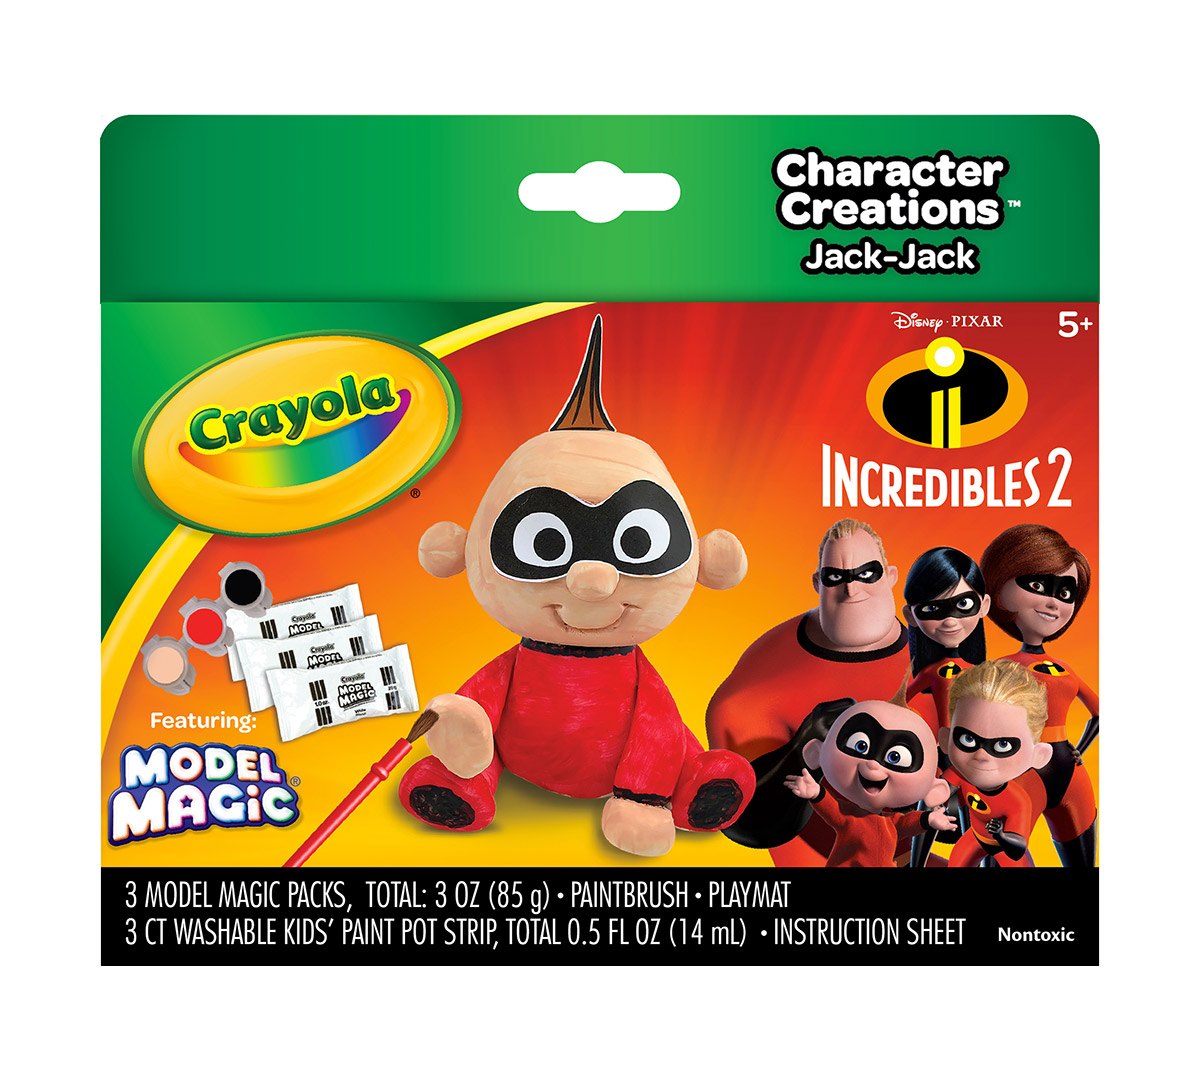 Crayola, Model Magic Character Creations, The Incredibles 2, Create  Jack-Jack, 3 Packs of Model Magic, 3 Paints, Brush, Play Mat, Punch Outs |  Crayola